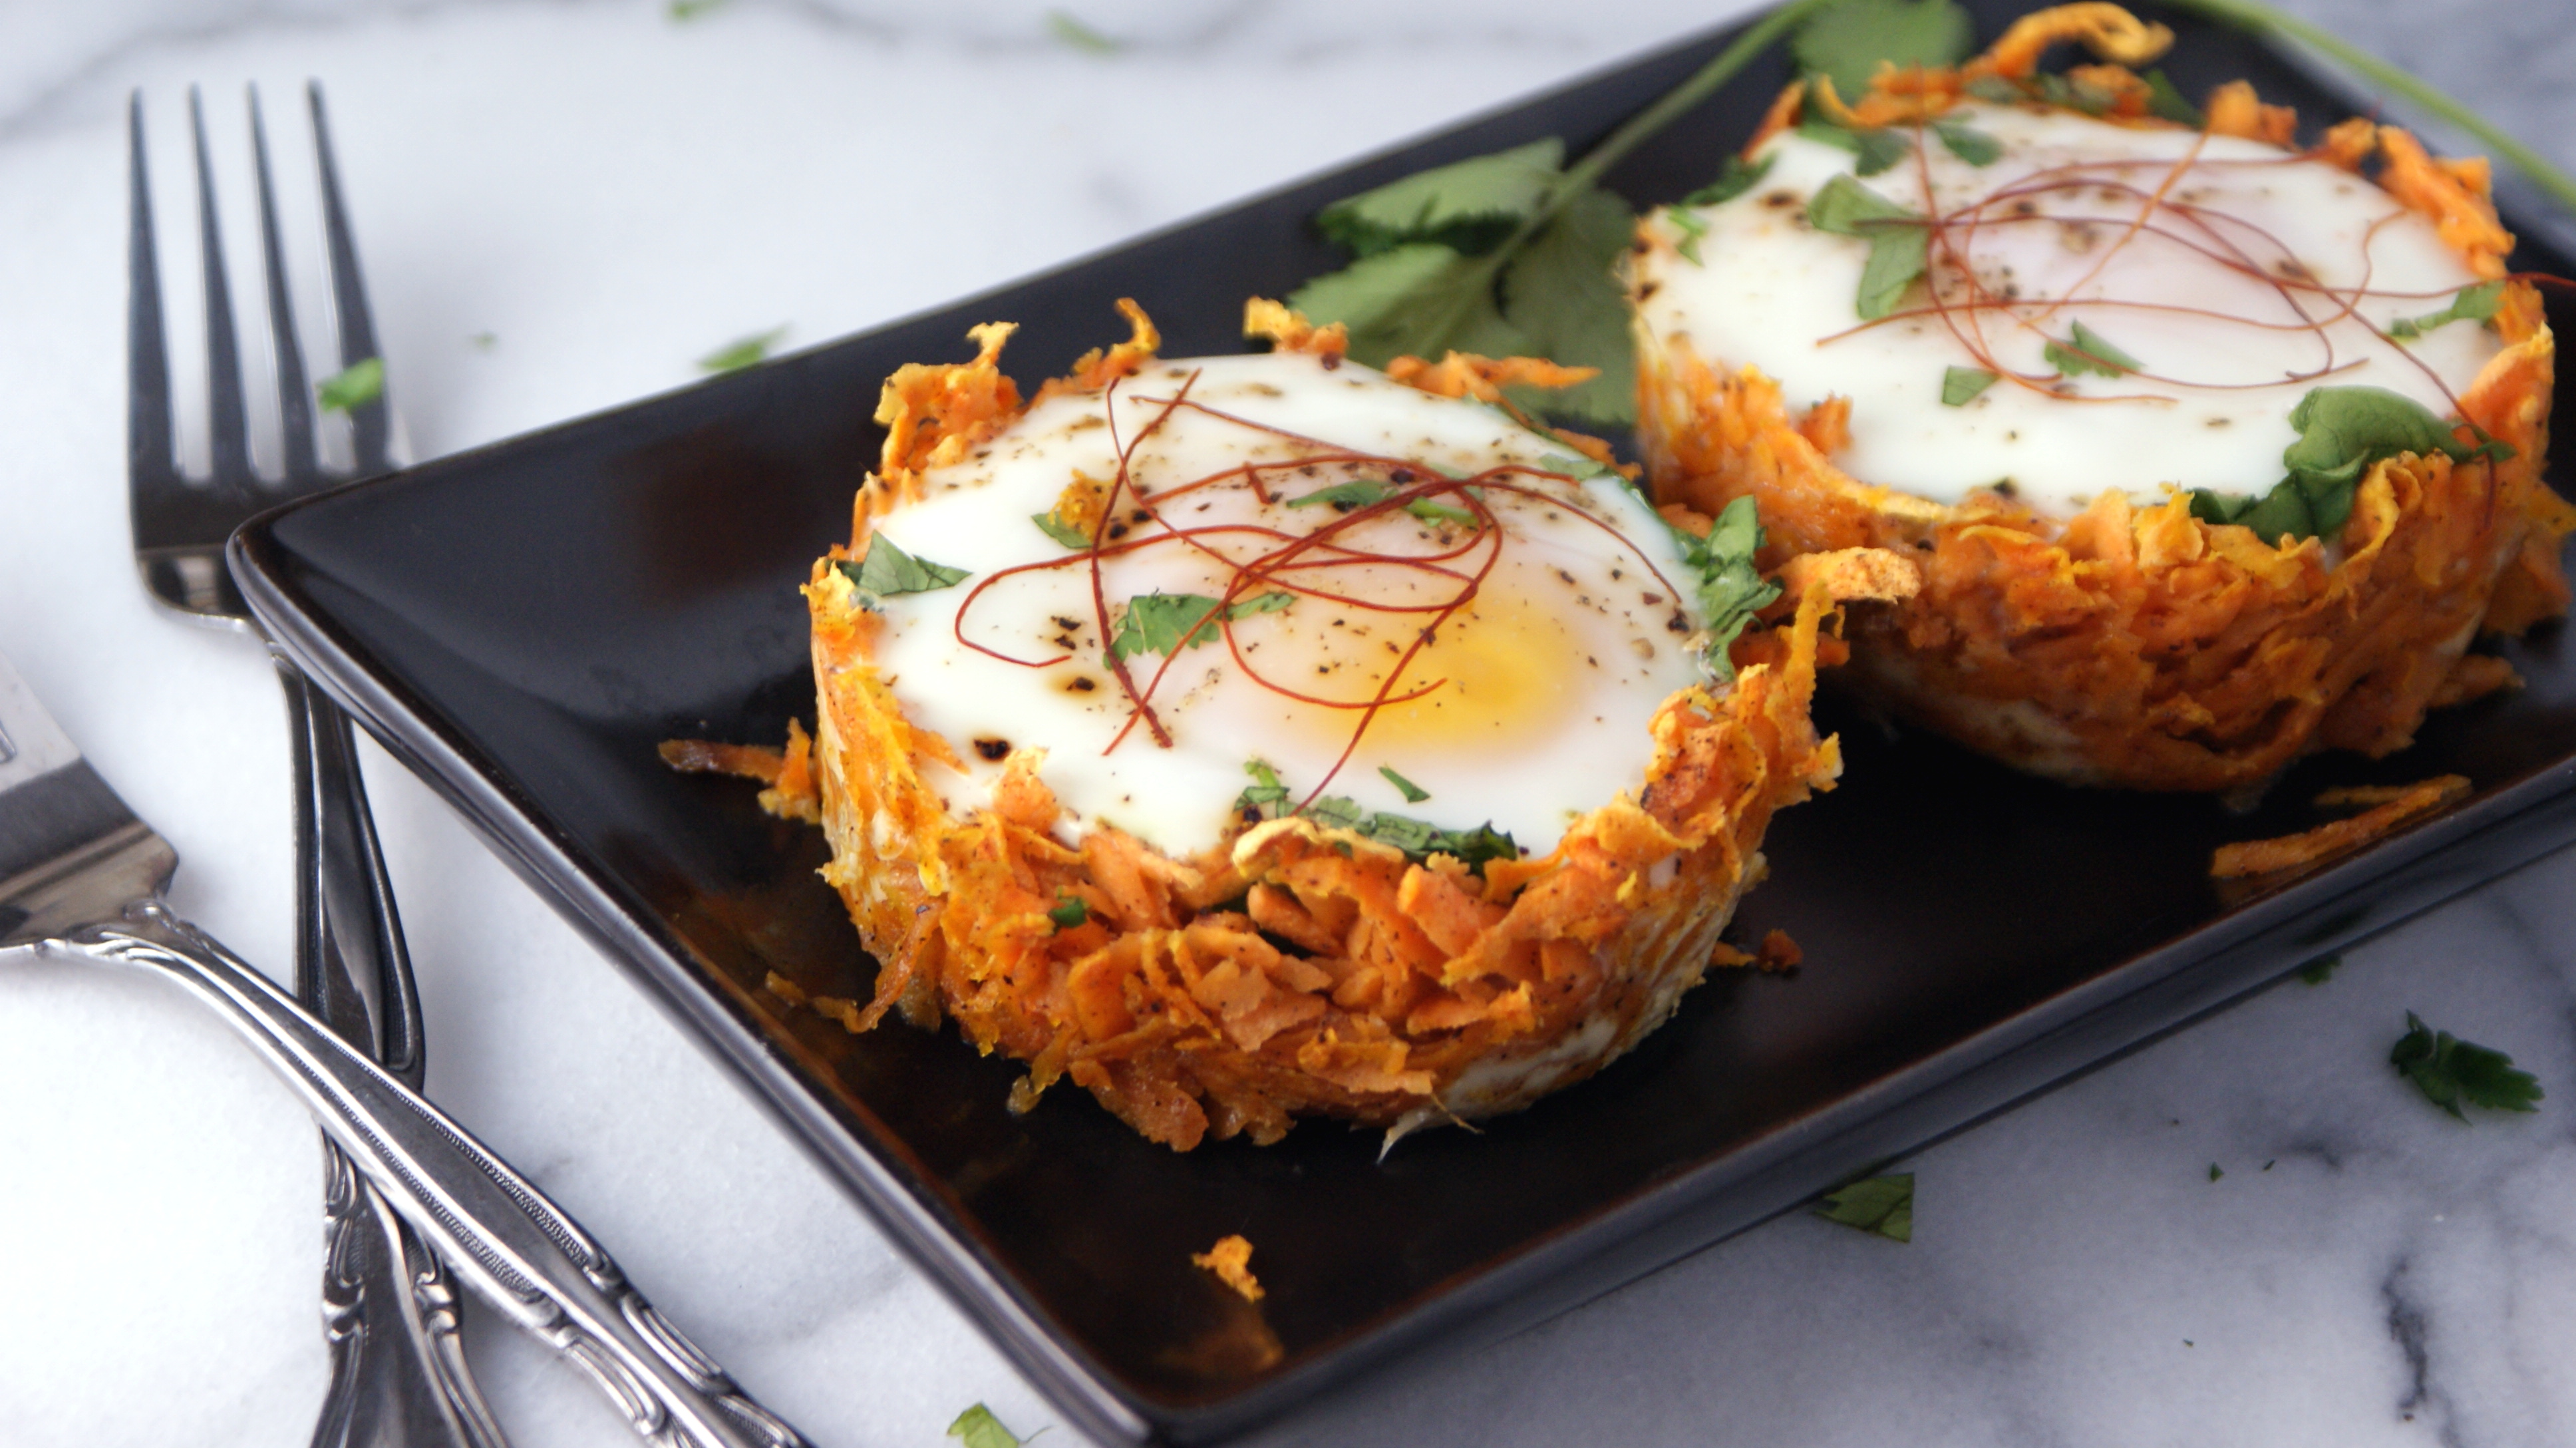 Baked Sweet Potato Egg Nests Cooking Up Clean